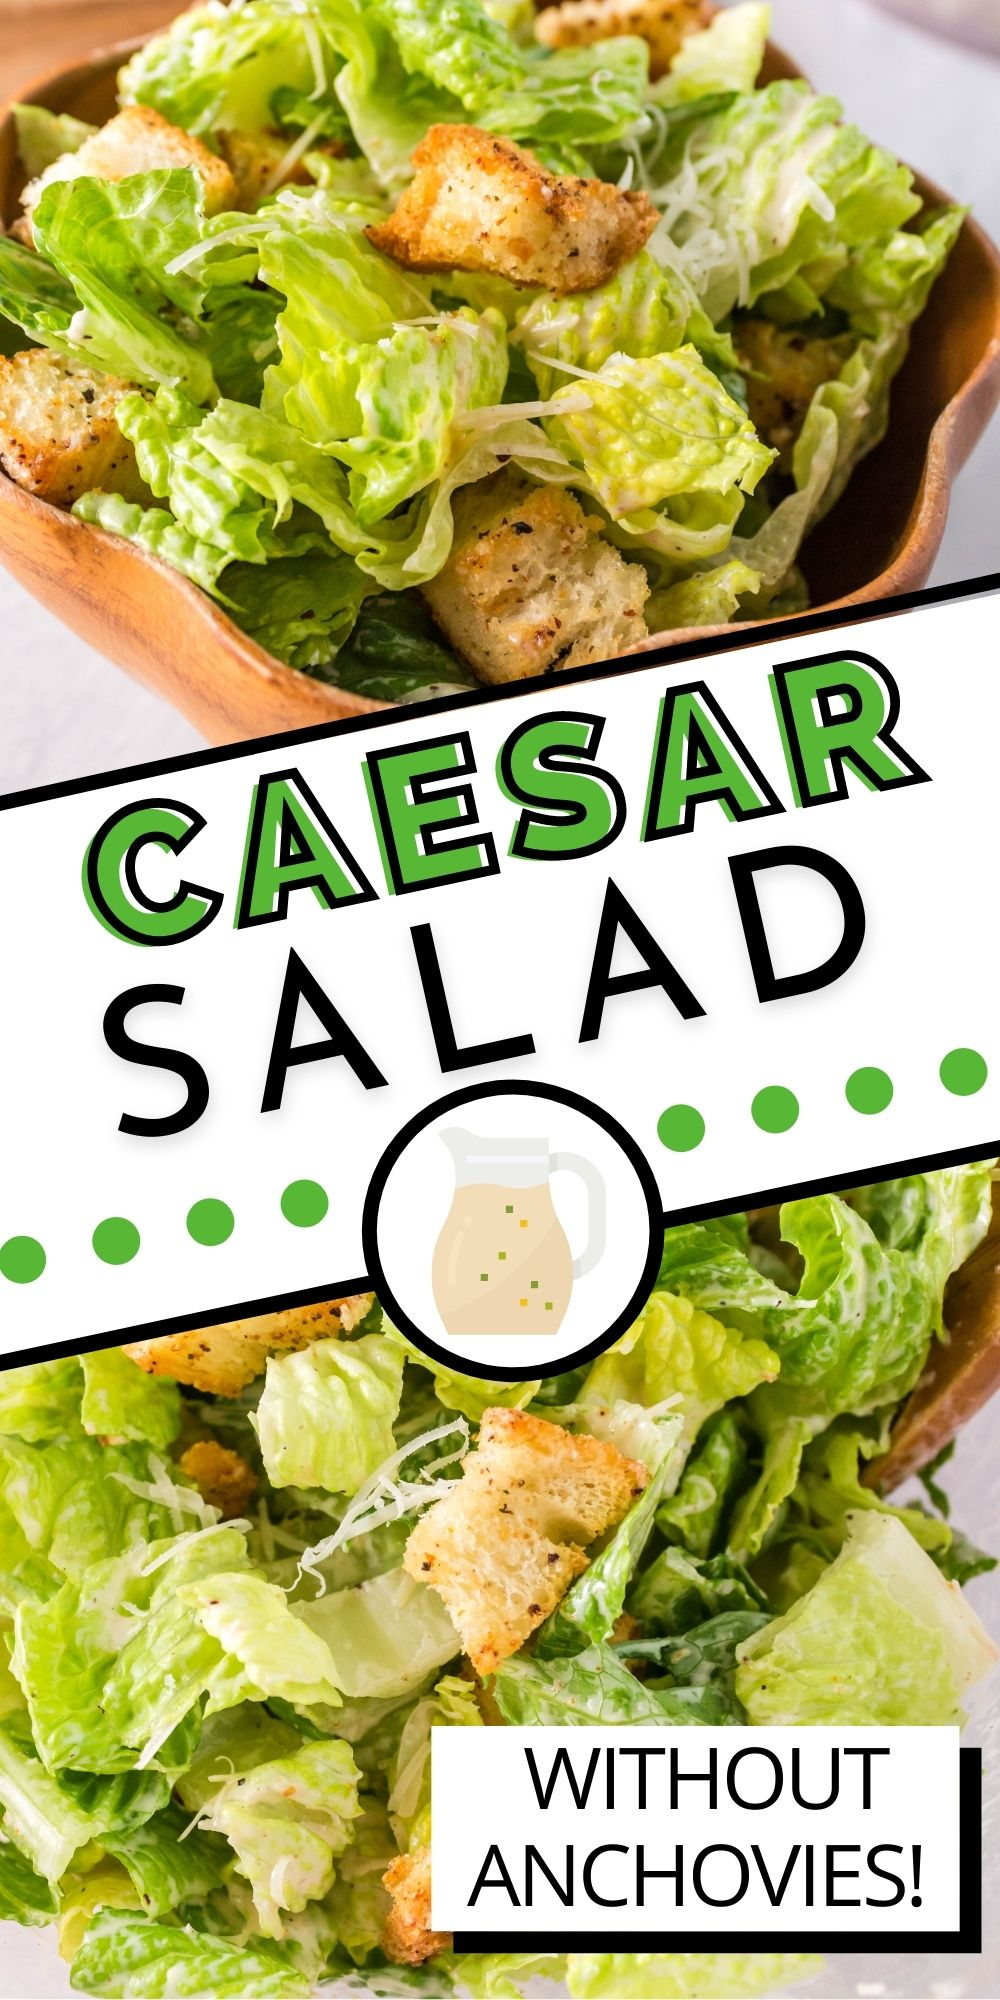 This Homemade Caesar Salad recipe is made with homemade croutons, Romaine lettuce, Parmesan cheese, and creamy Caesar salad dressing that's made without anchovies.  via @easybudgetrecipes